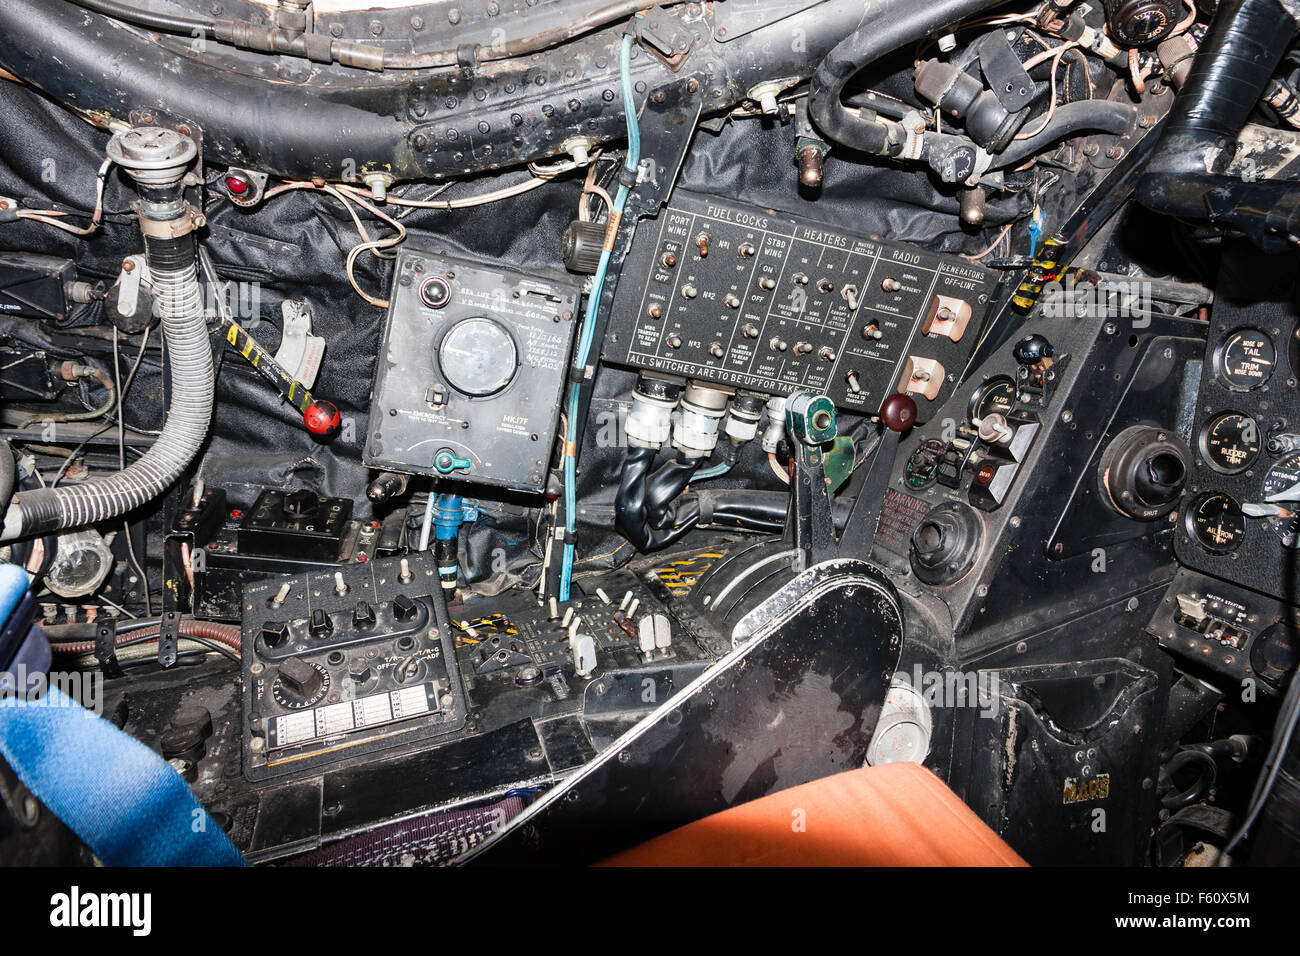 Interior of RAF Canberra bomber showing pilot's seat with front and side control panels. Stock Photo